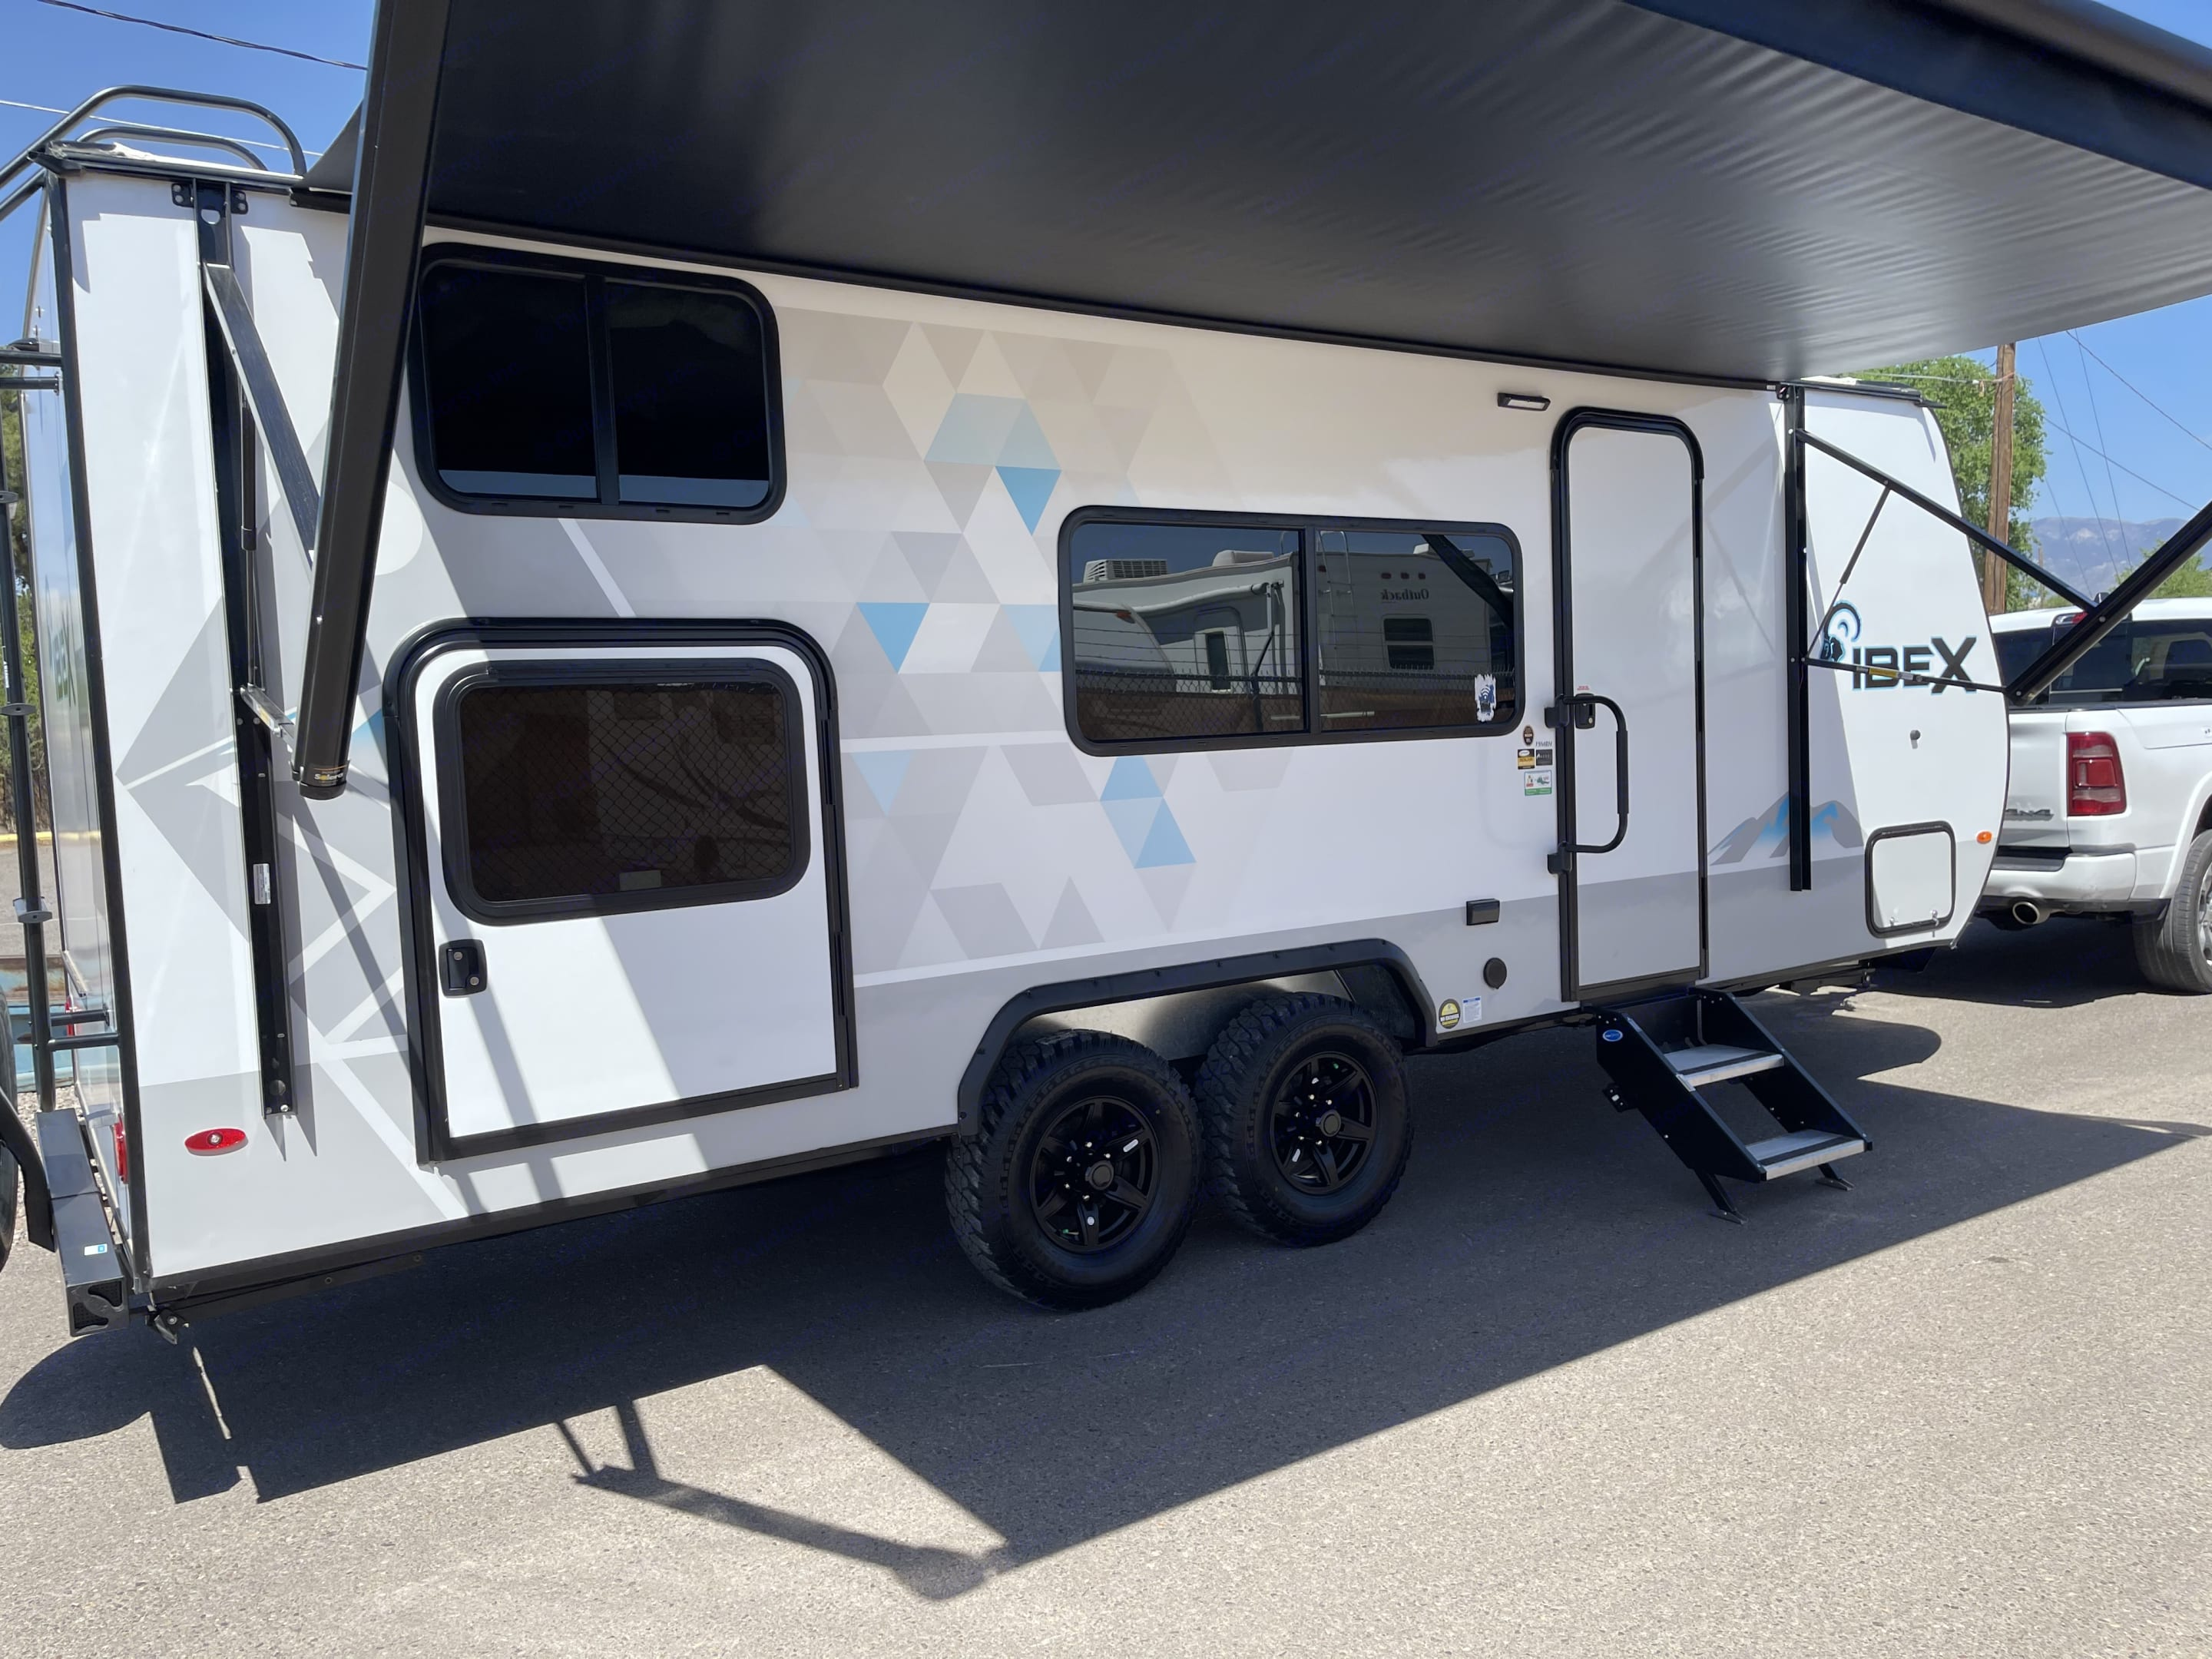 HUGE AWNING!!. Forest River IBEX-19MBH 2021